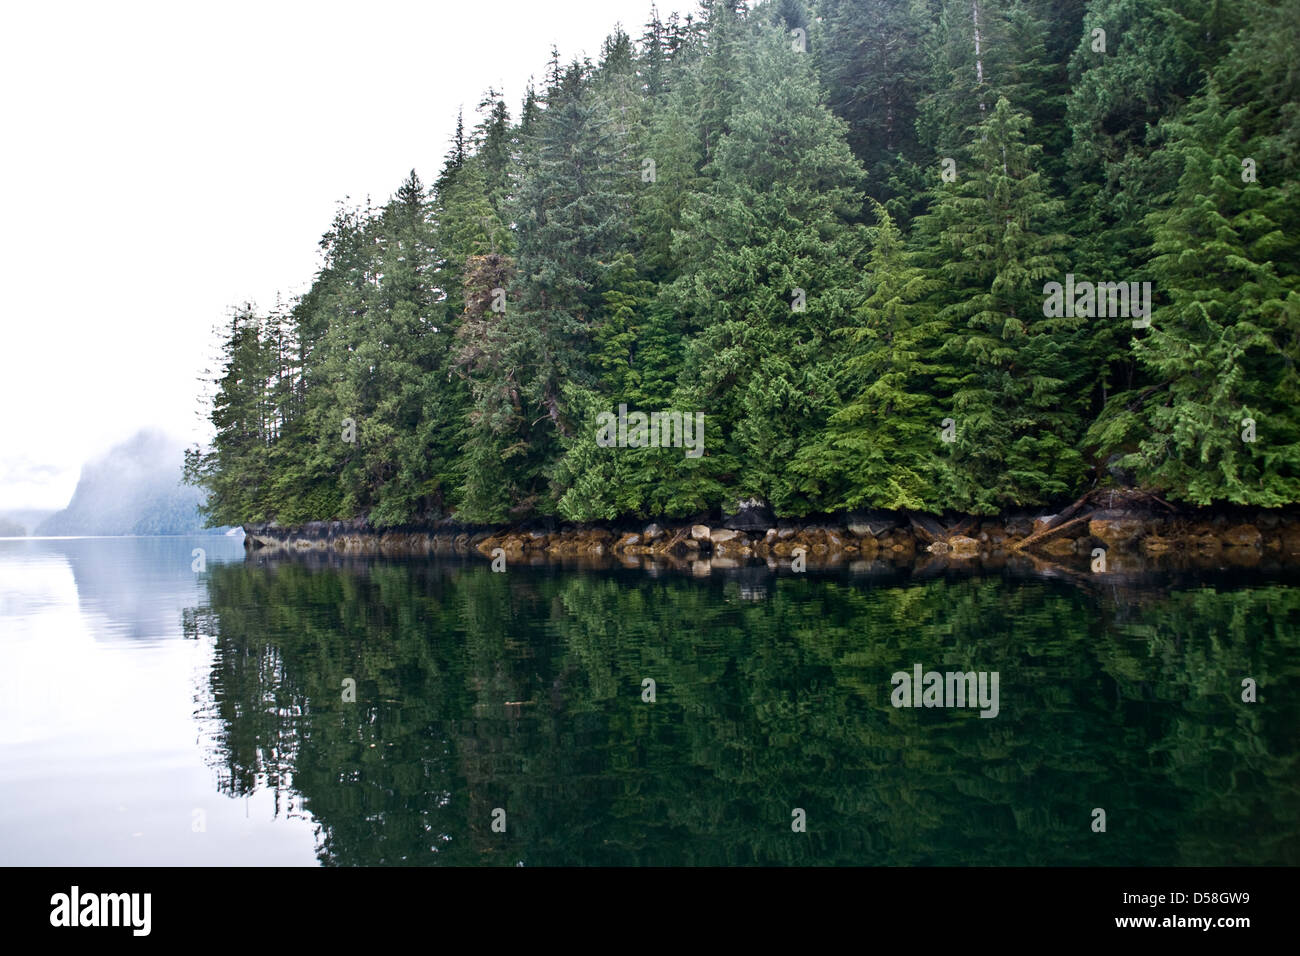 Refections of a forested coastline in the Troup Passage in the scenic Great Bear Rainforest, coastal British Columbia, - Stock Image